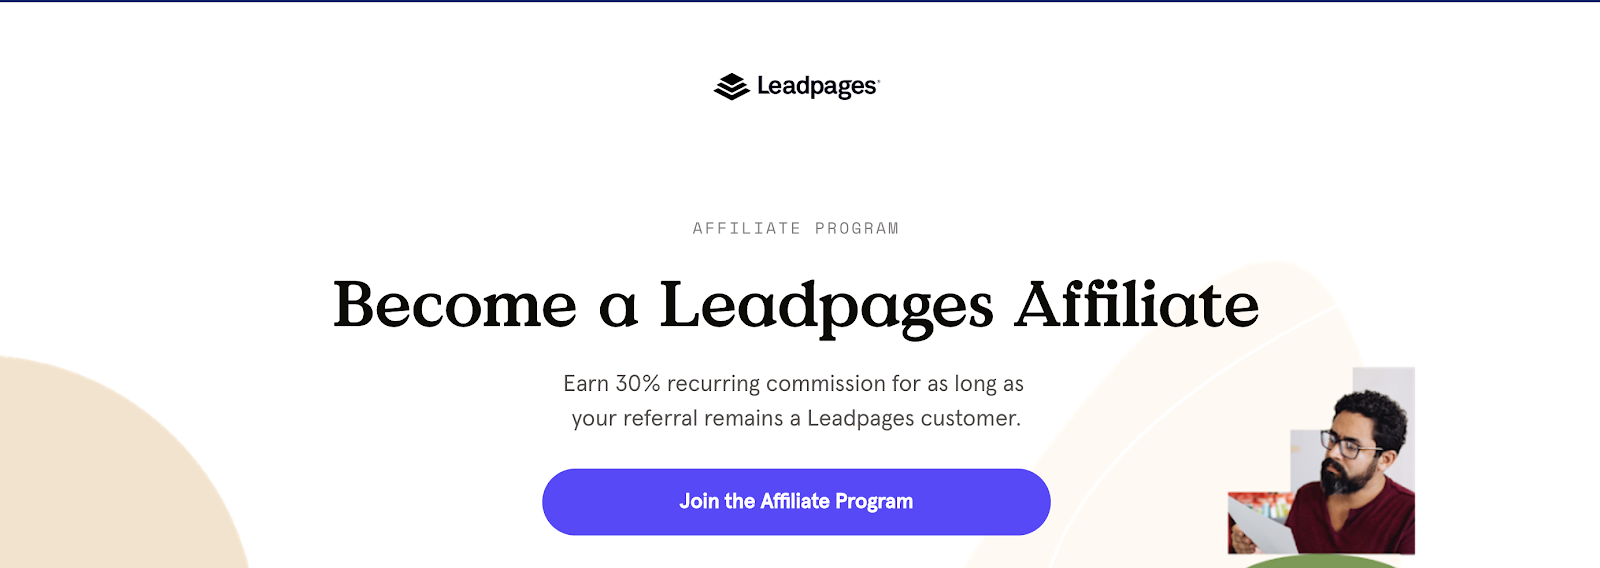 LeadPages Affiliate Program Landing Page (Screenshot)